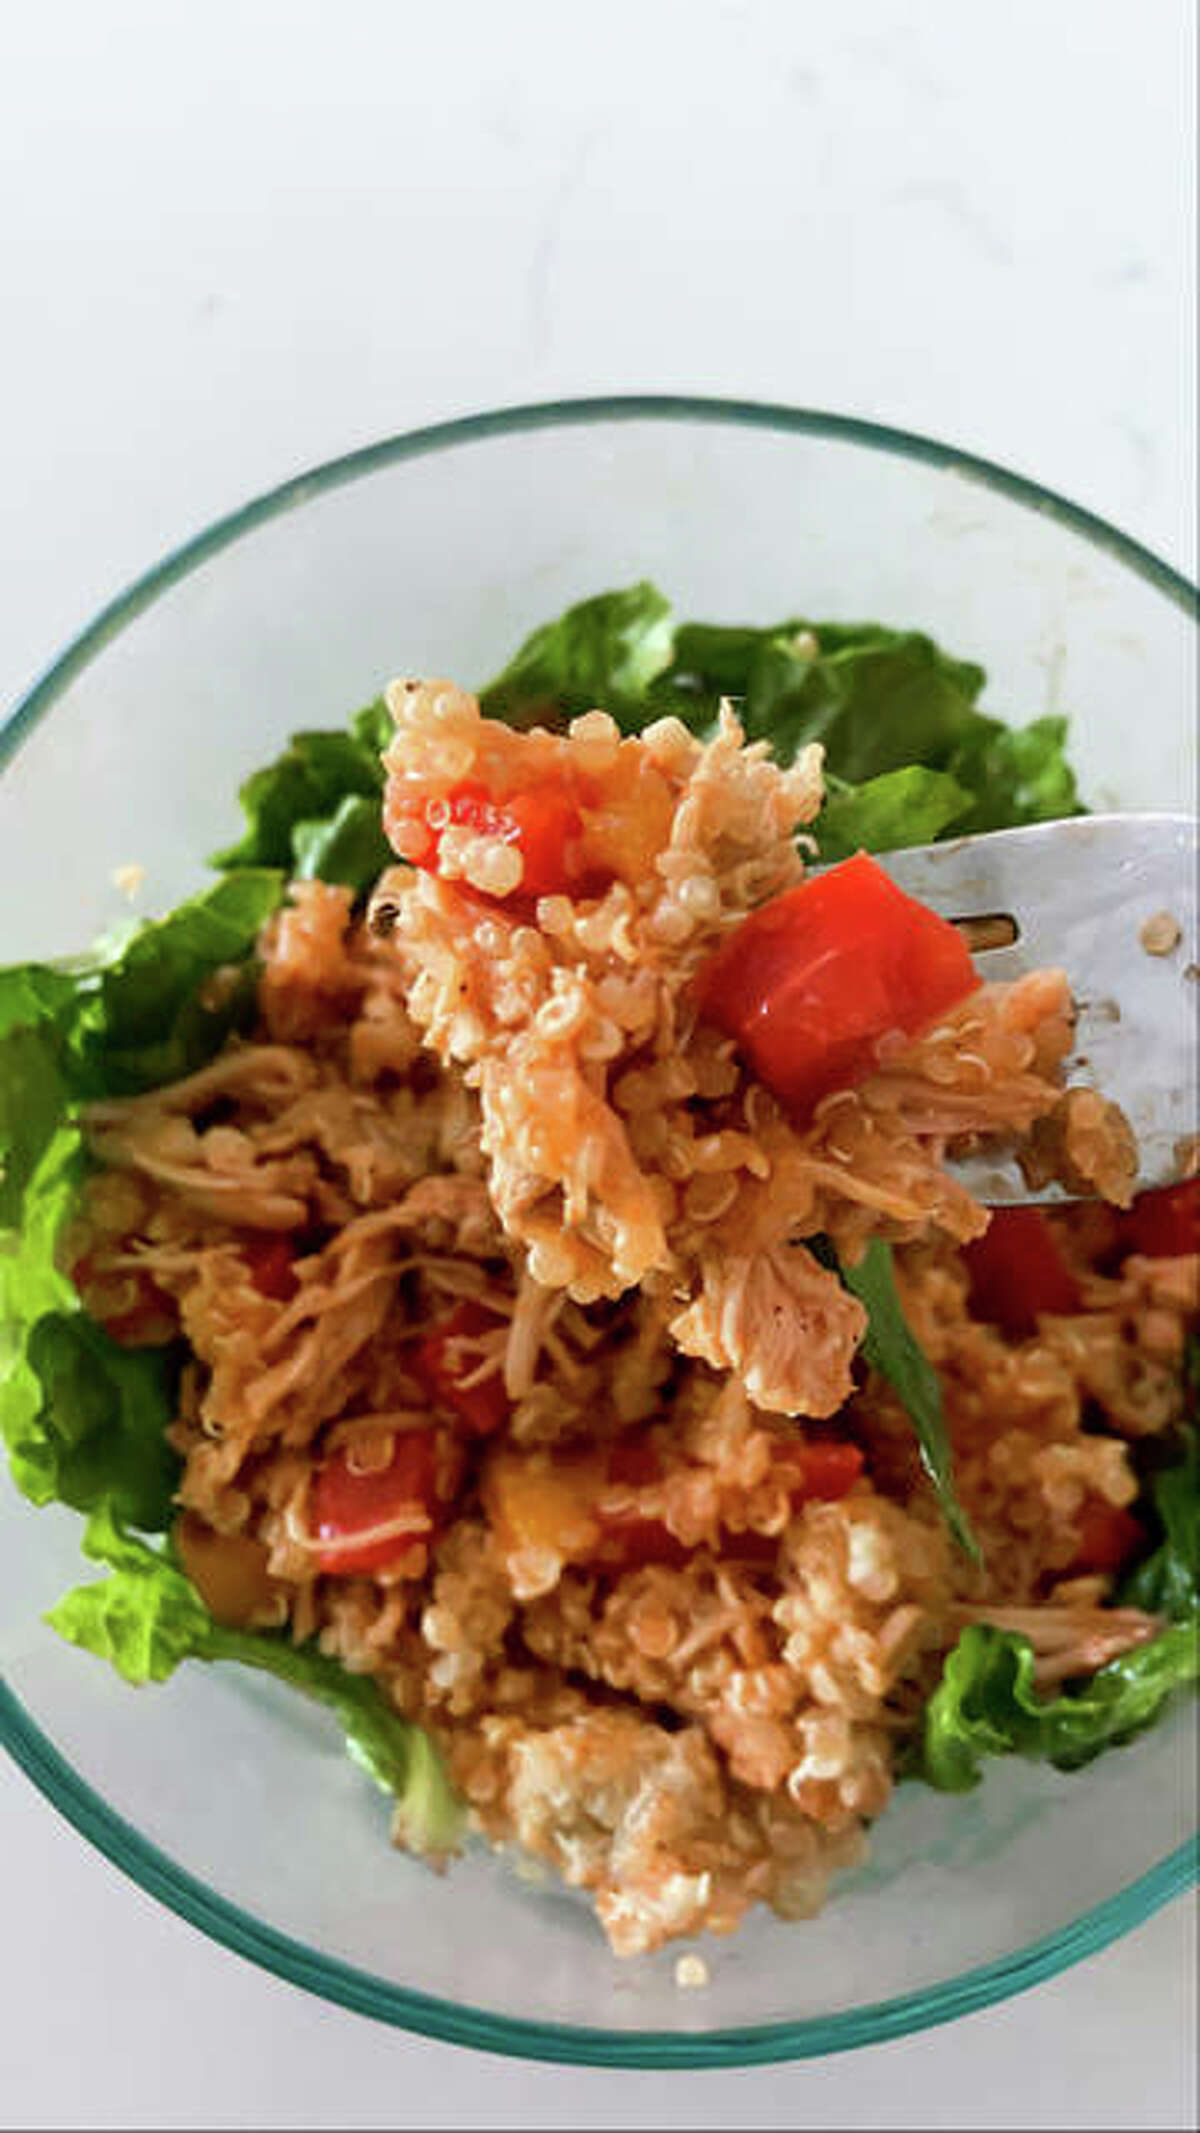 Buffalo Chicken and Veggies with Quinoa dish is perfect for meal prepping, according to recipe creator Rachel Tritsch.